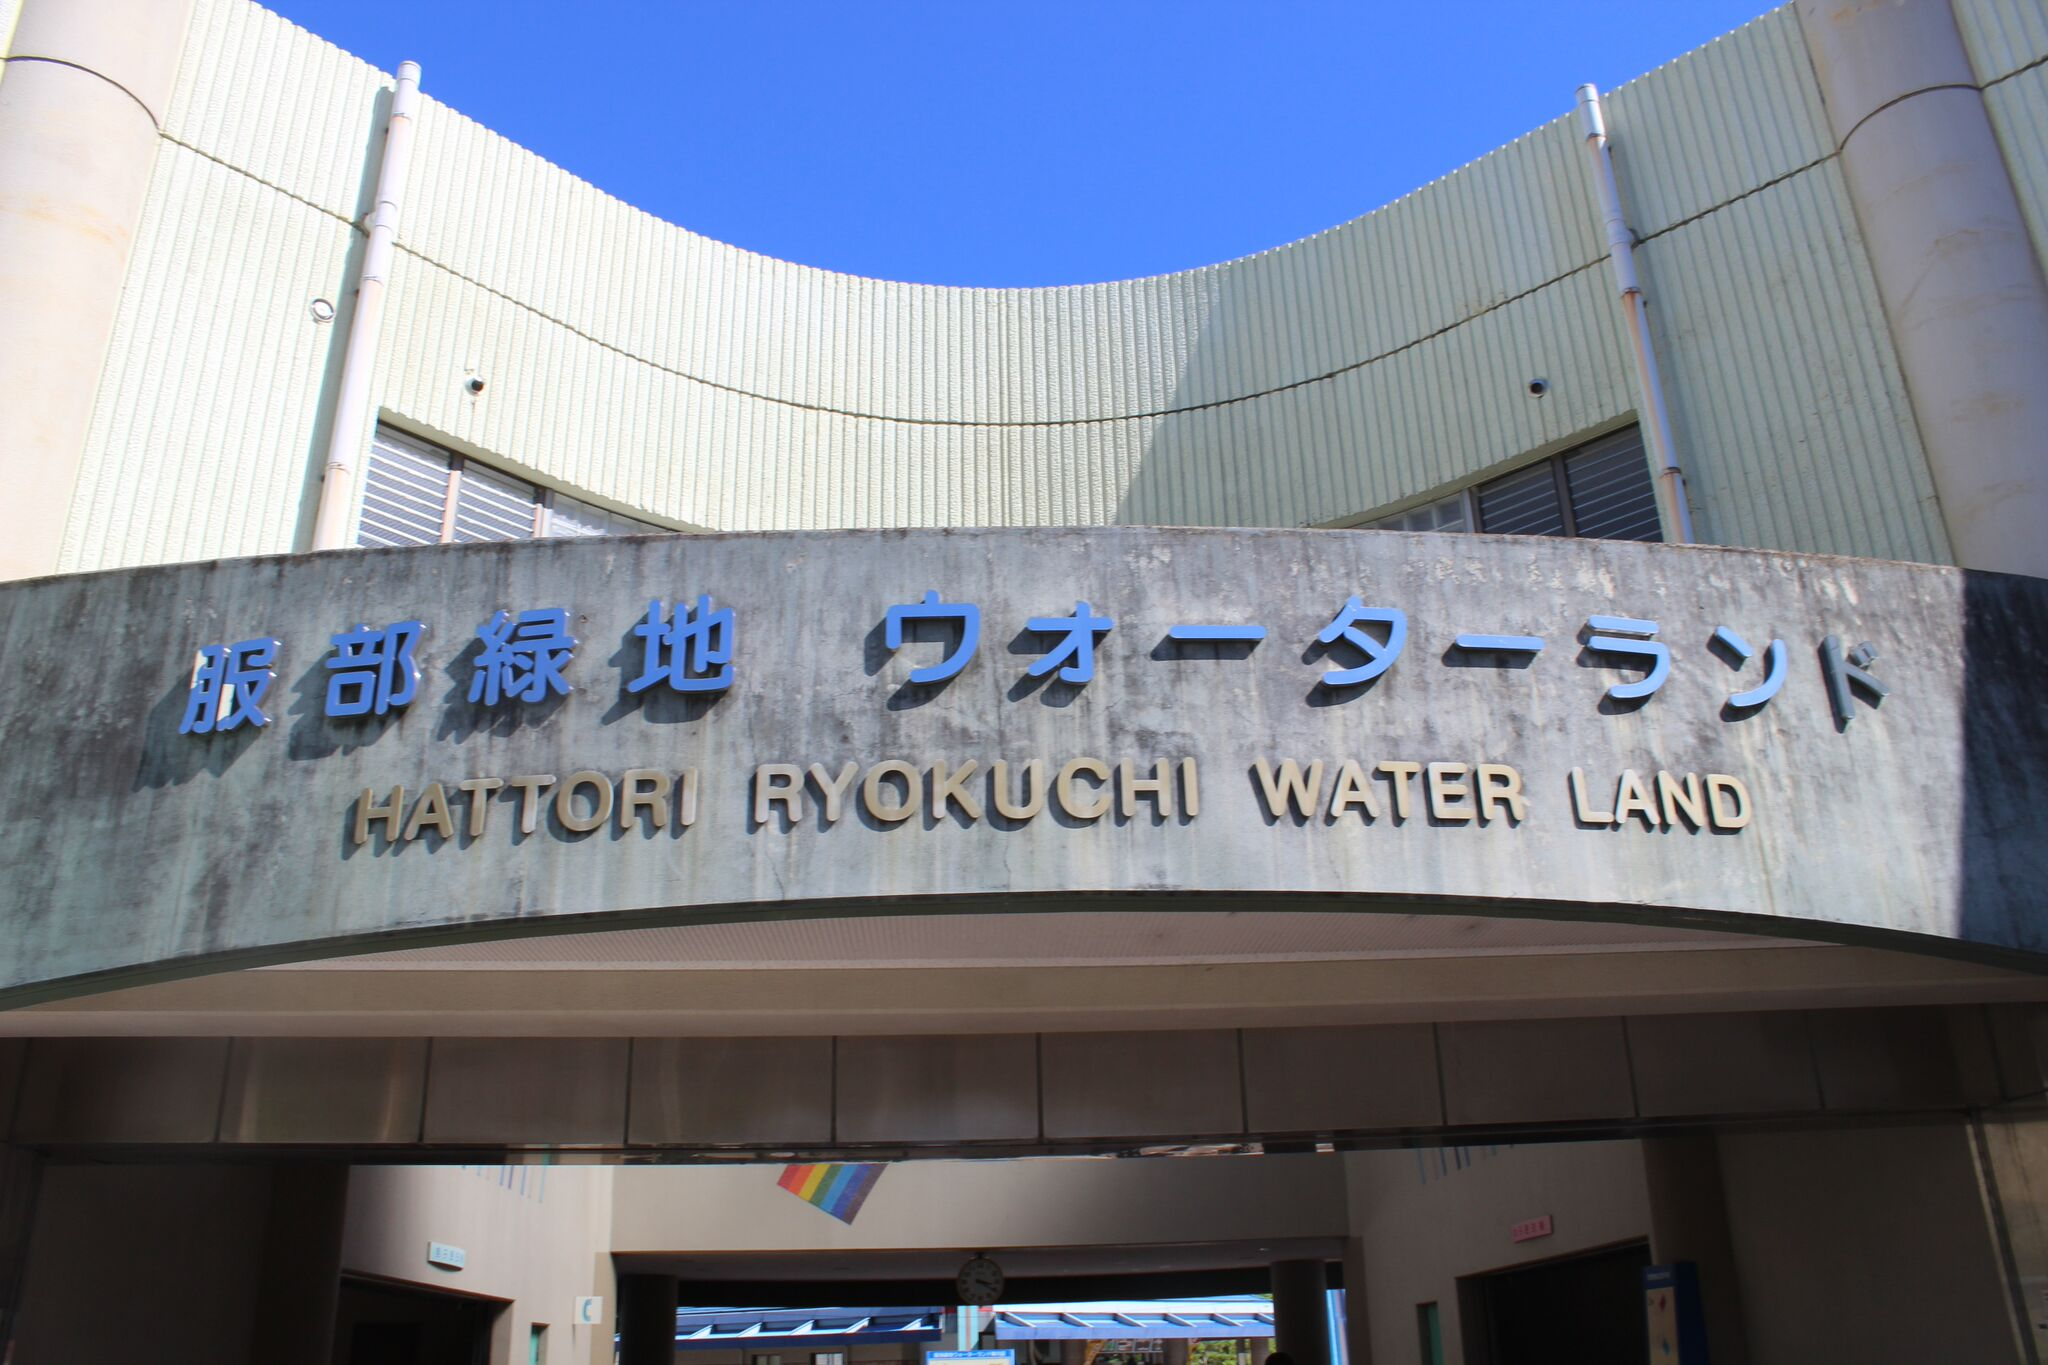 hattoriryokuchi waterland18